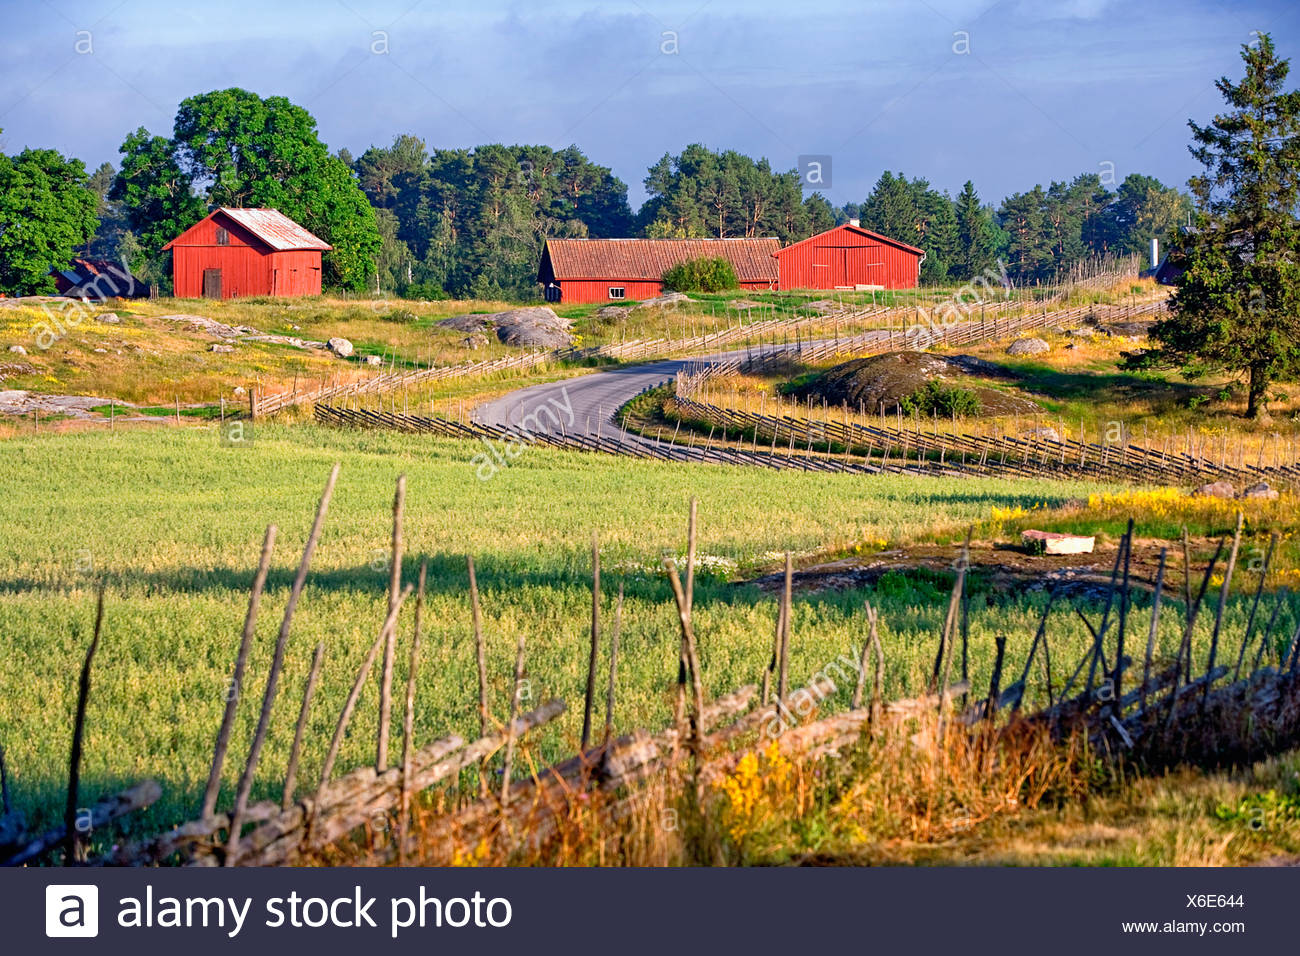 Sweden Uppland Arrangement Background Barn Barns Country Countryside Ecosystem Europe Exterior Fence Forest Green Landscape